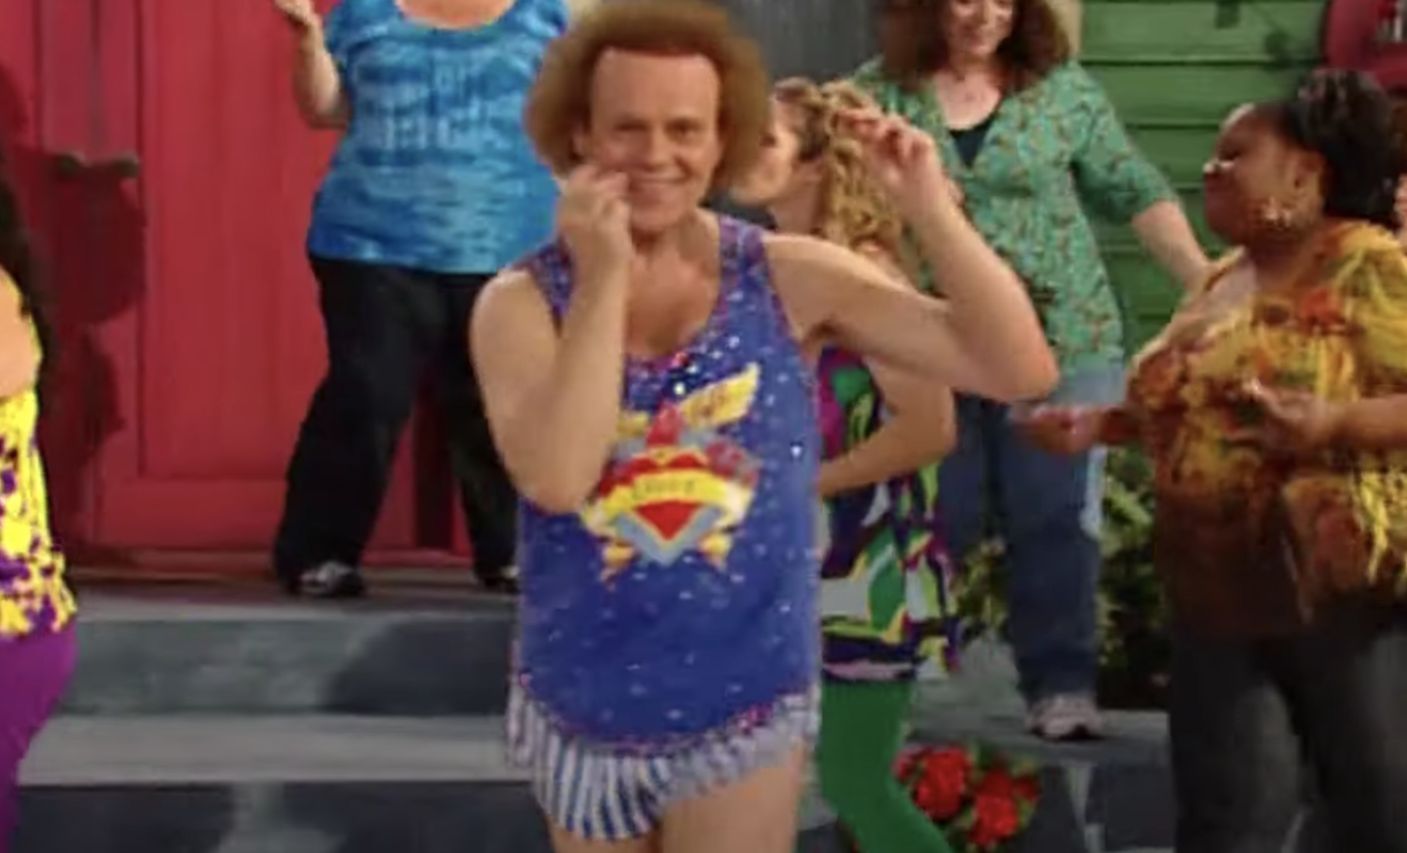 Richard Simmons in a colorful workout outfit, dancing to music